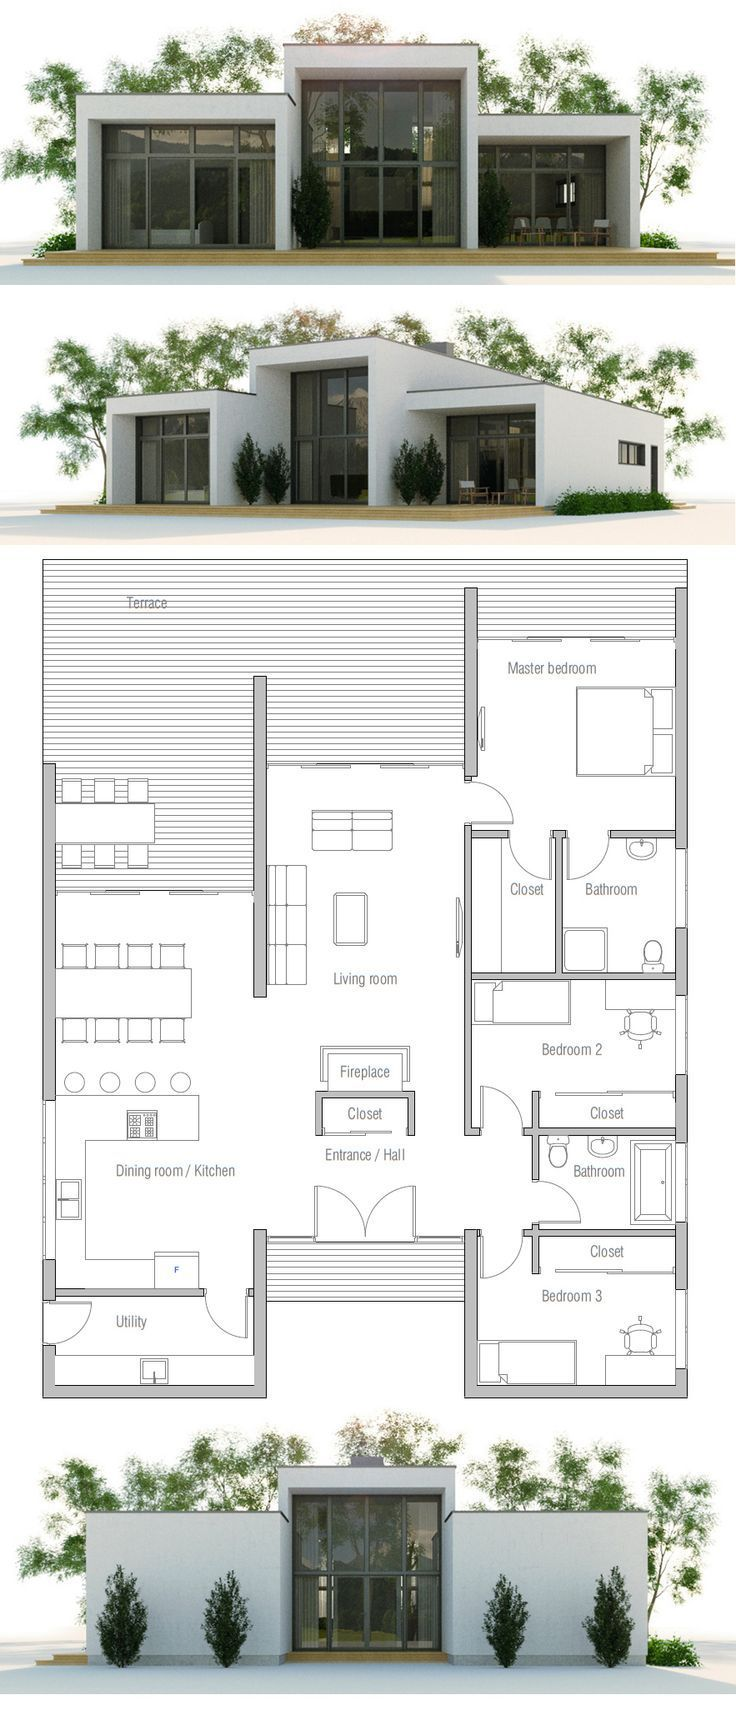 House Plan Building A Container Home Container House Modern Minimalist House